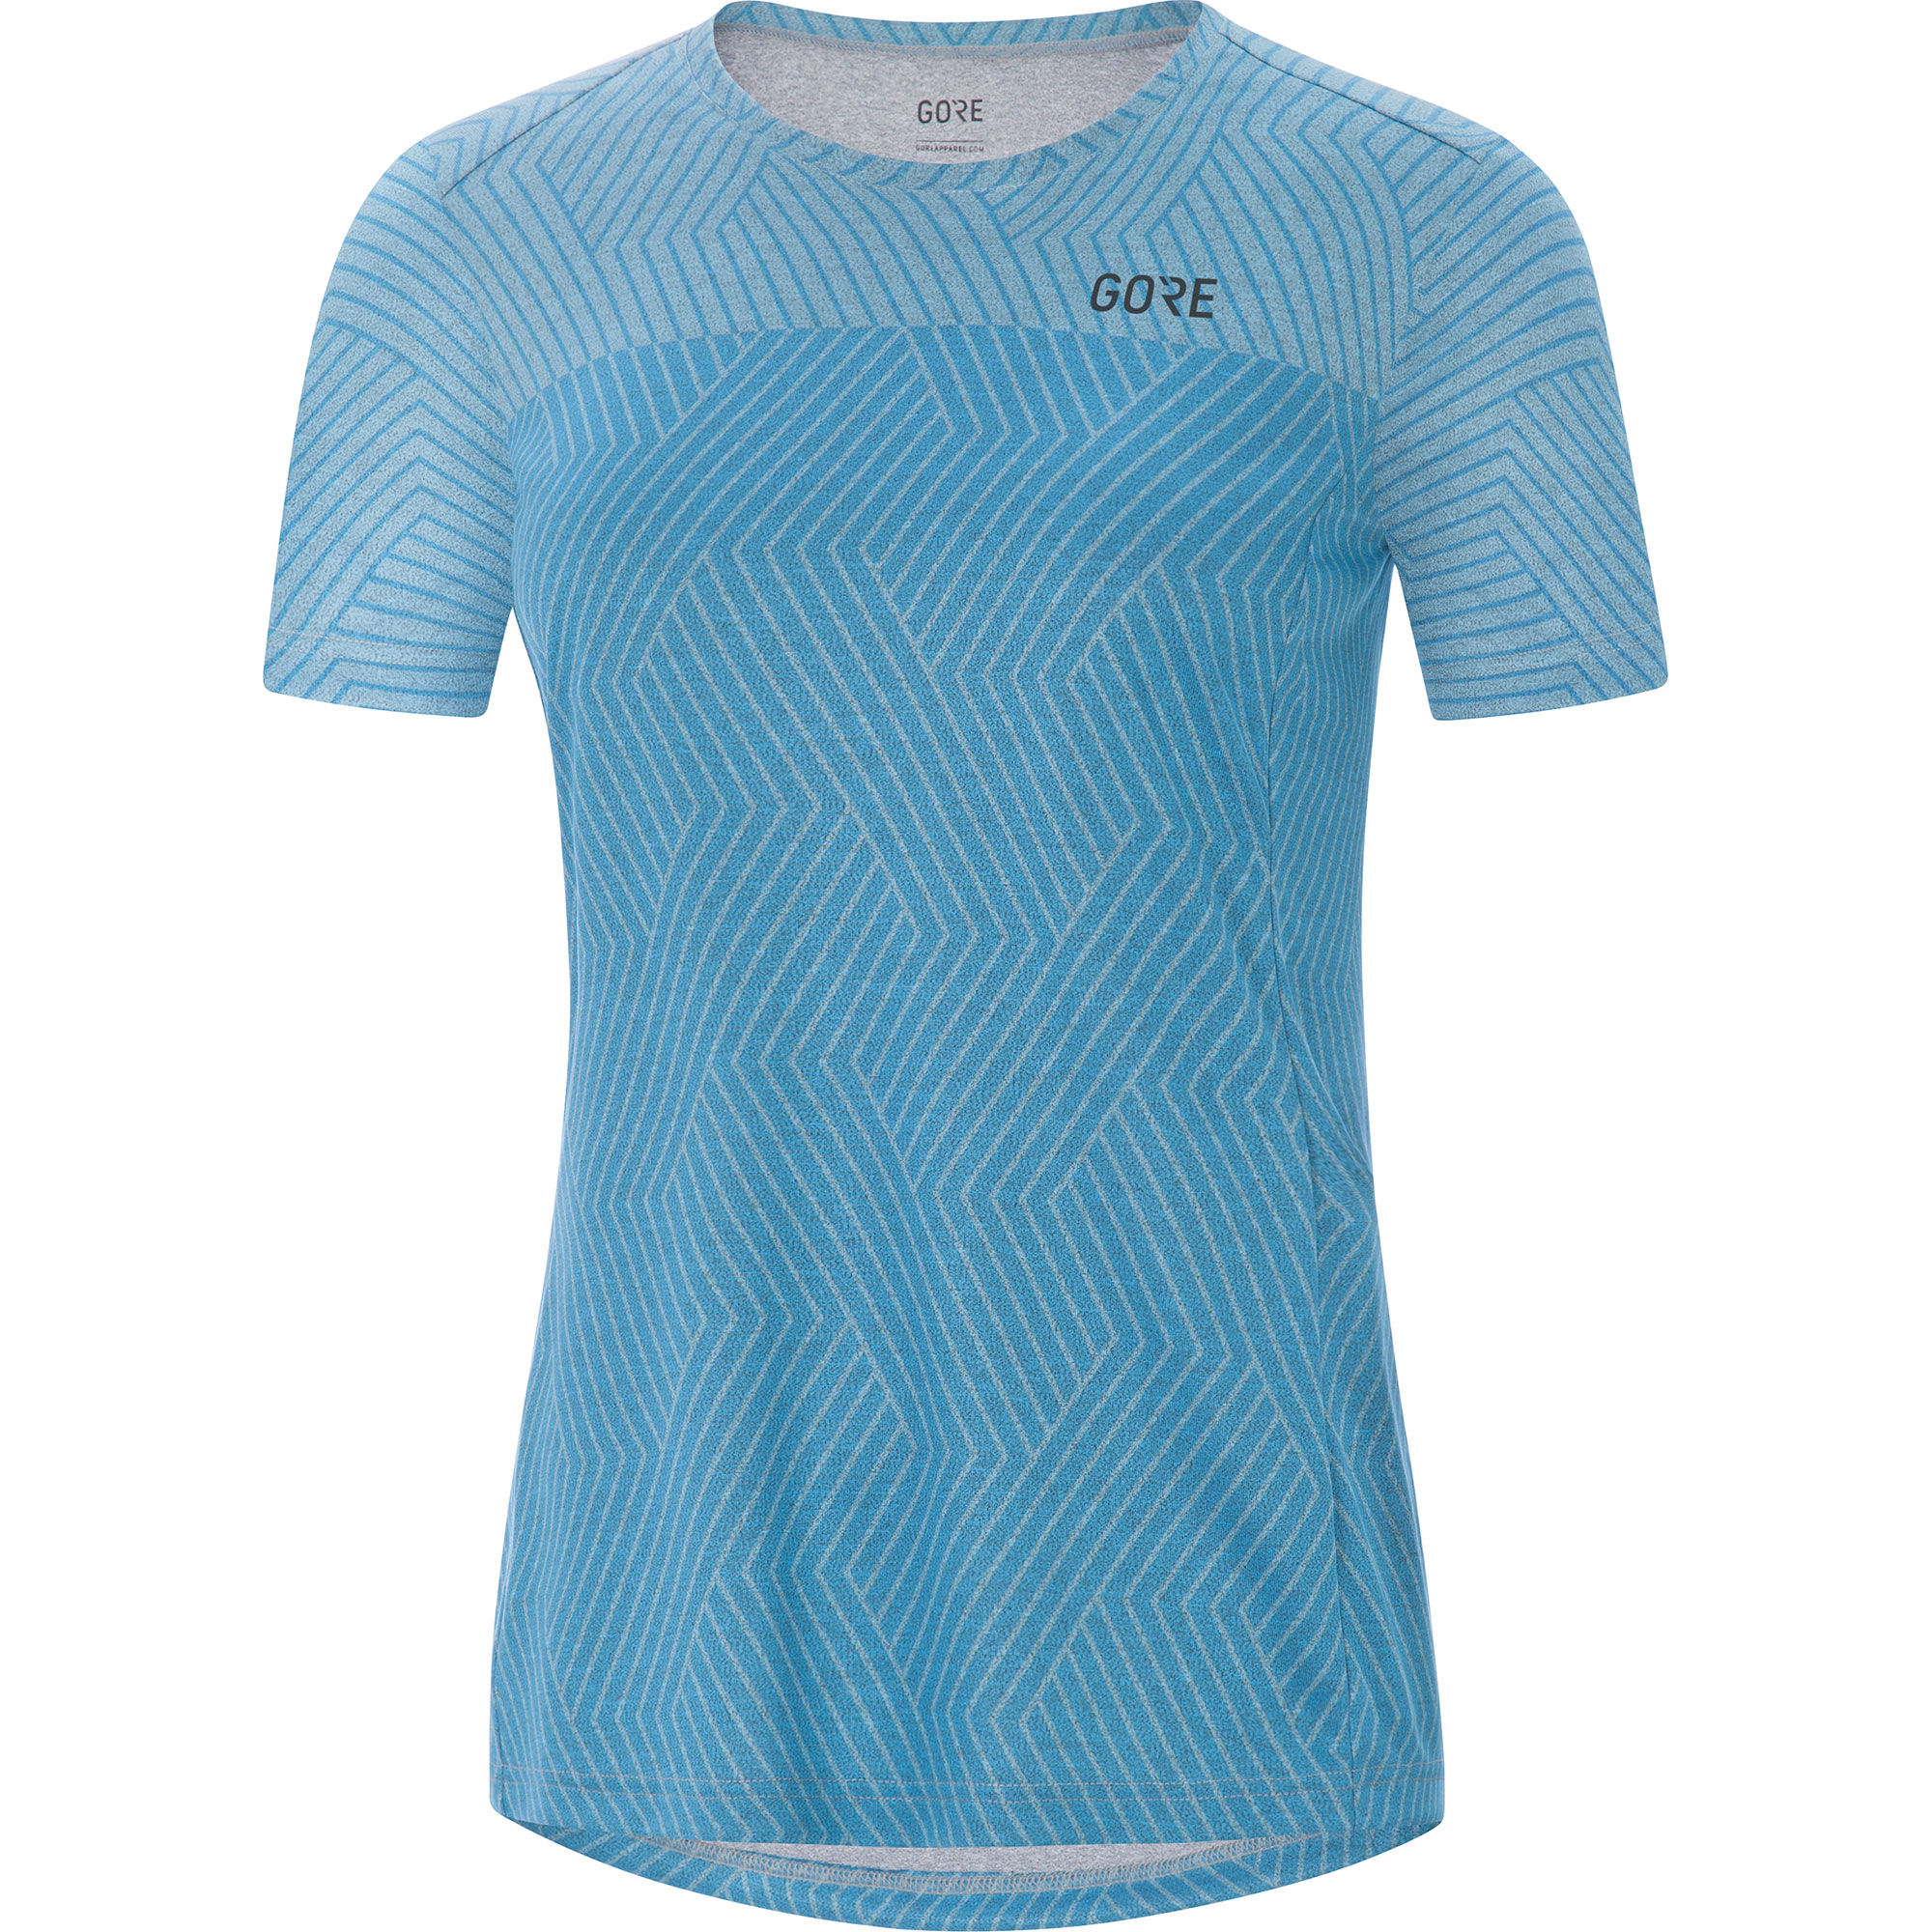 Gore R3 Lady Optiline Shirt in Blau